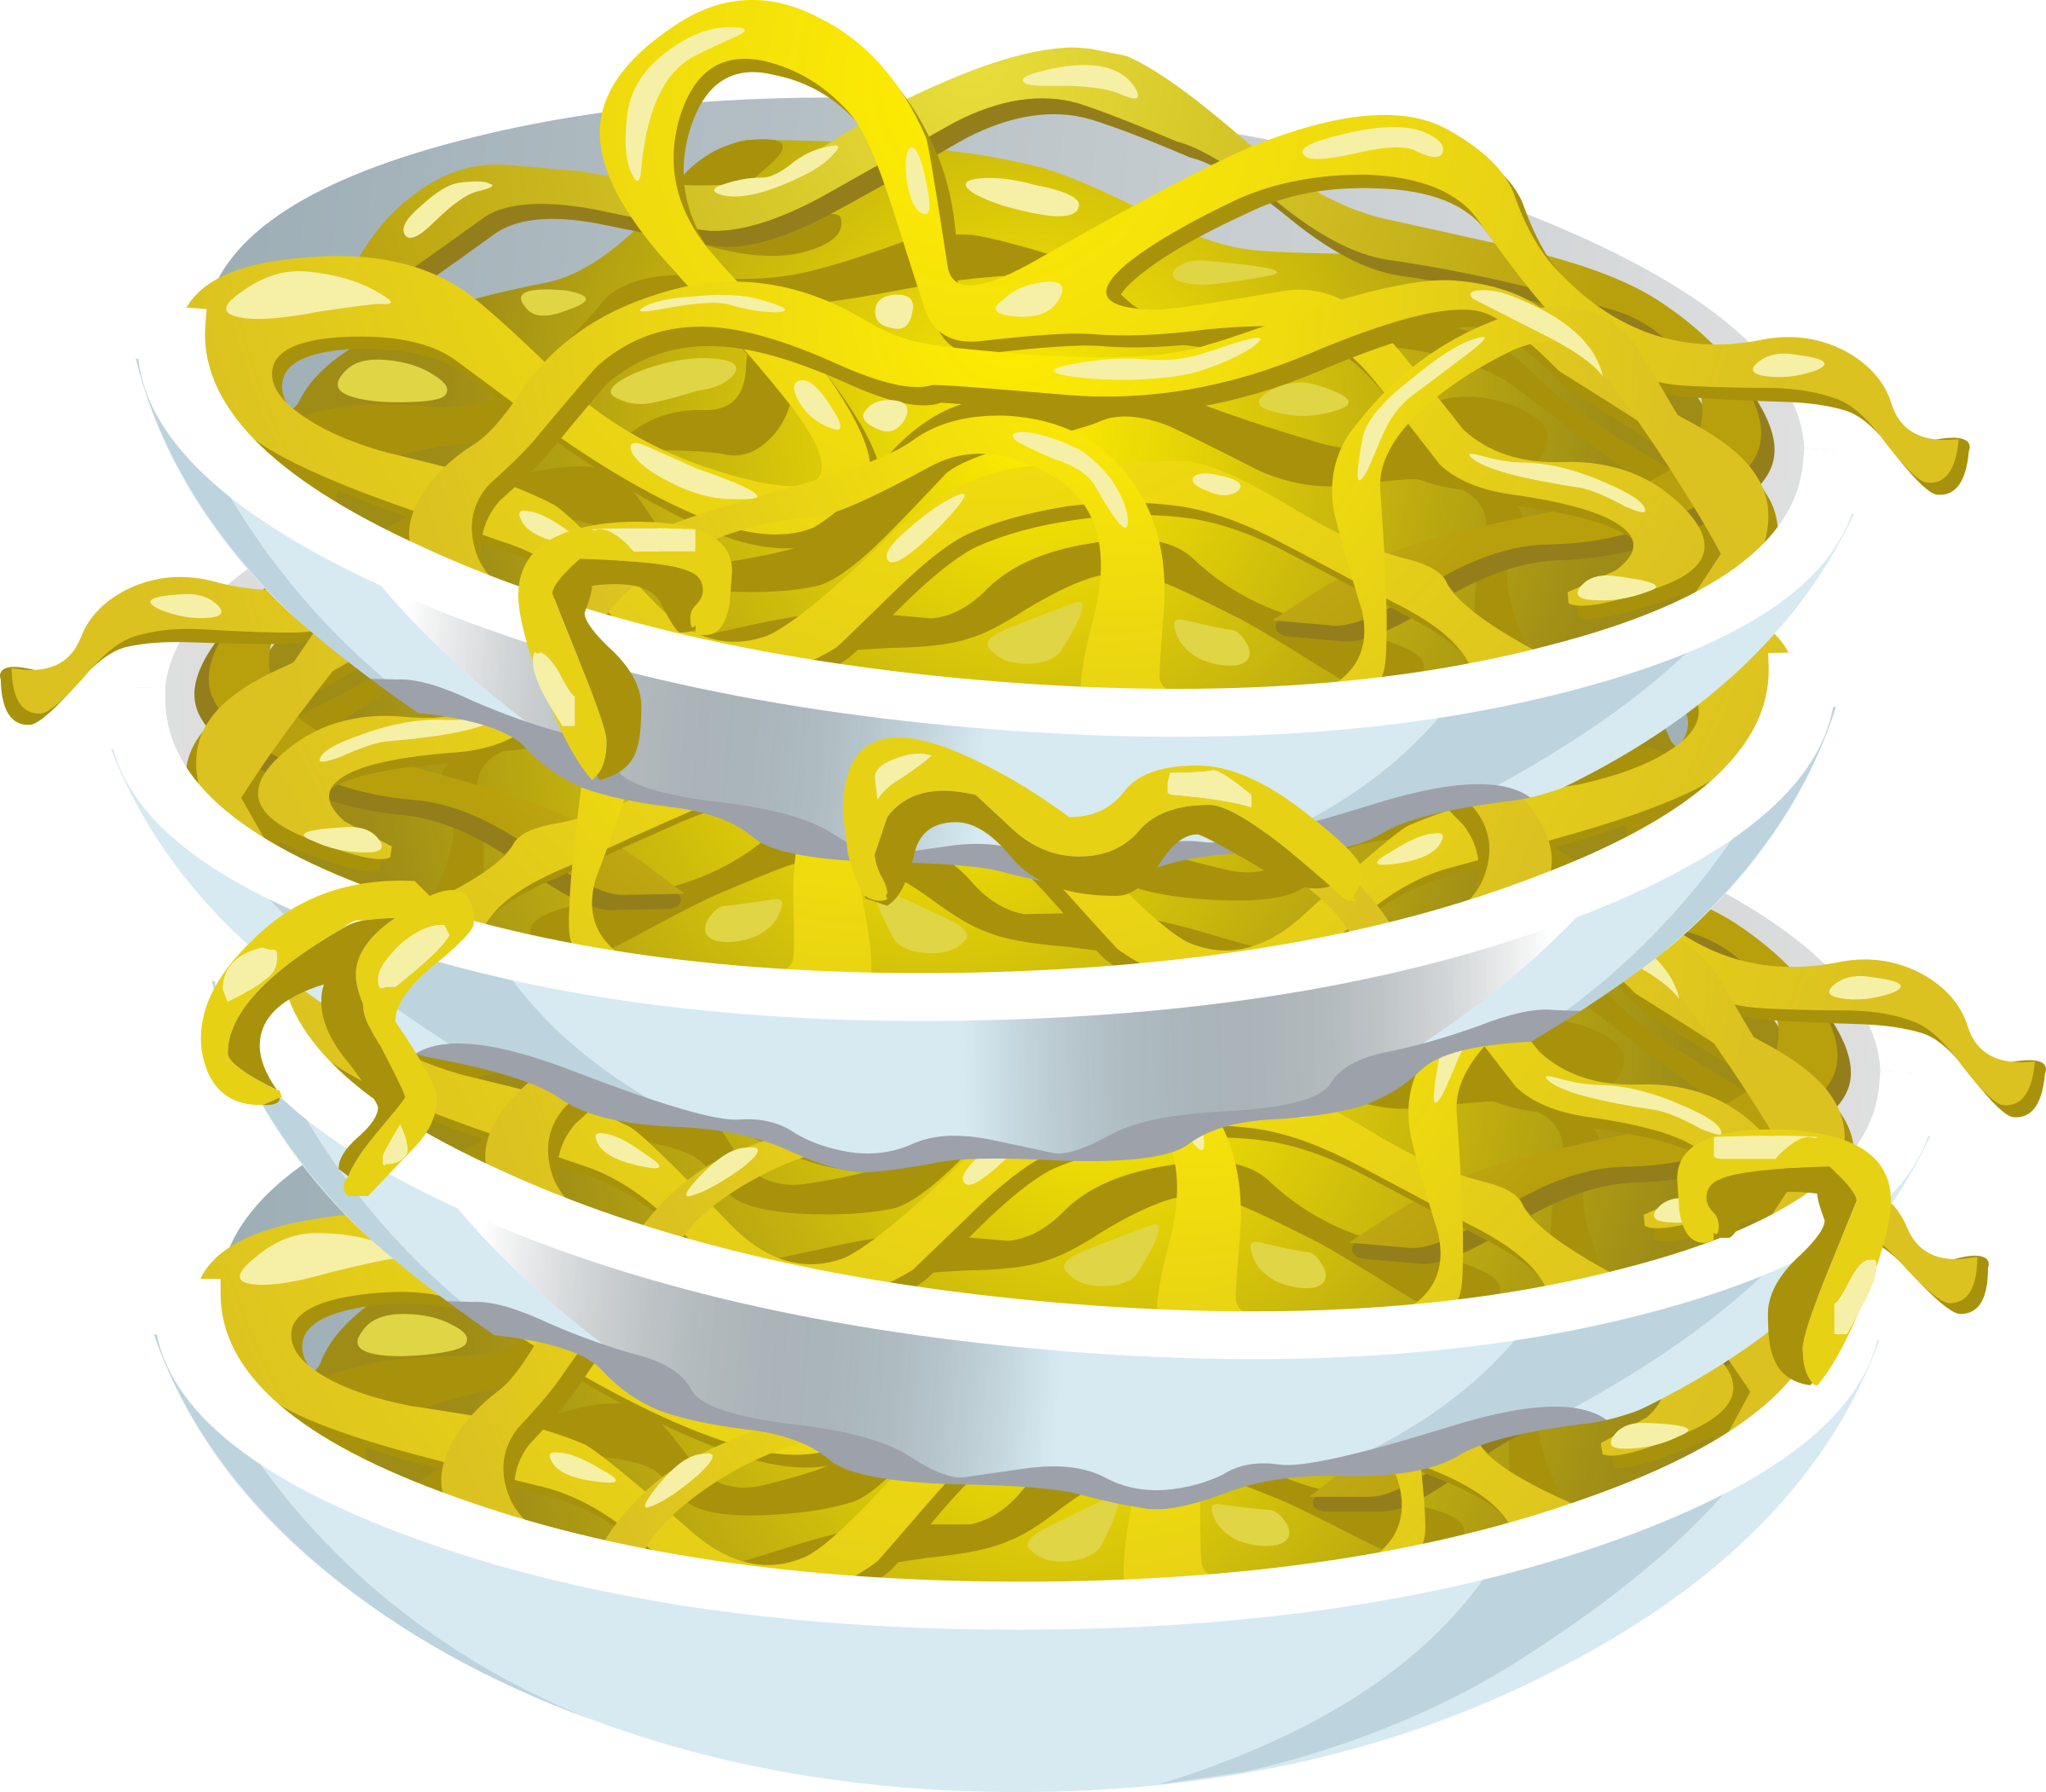 Mami pencil and in. Noodles clipart udon noodle